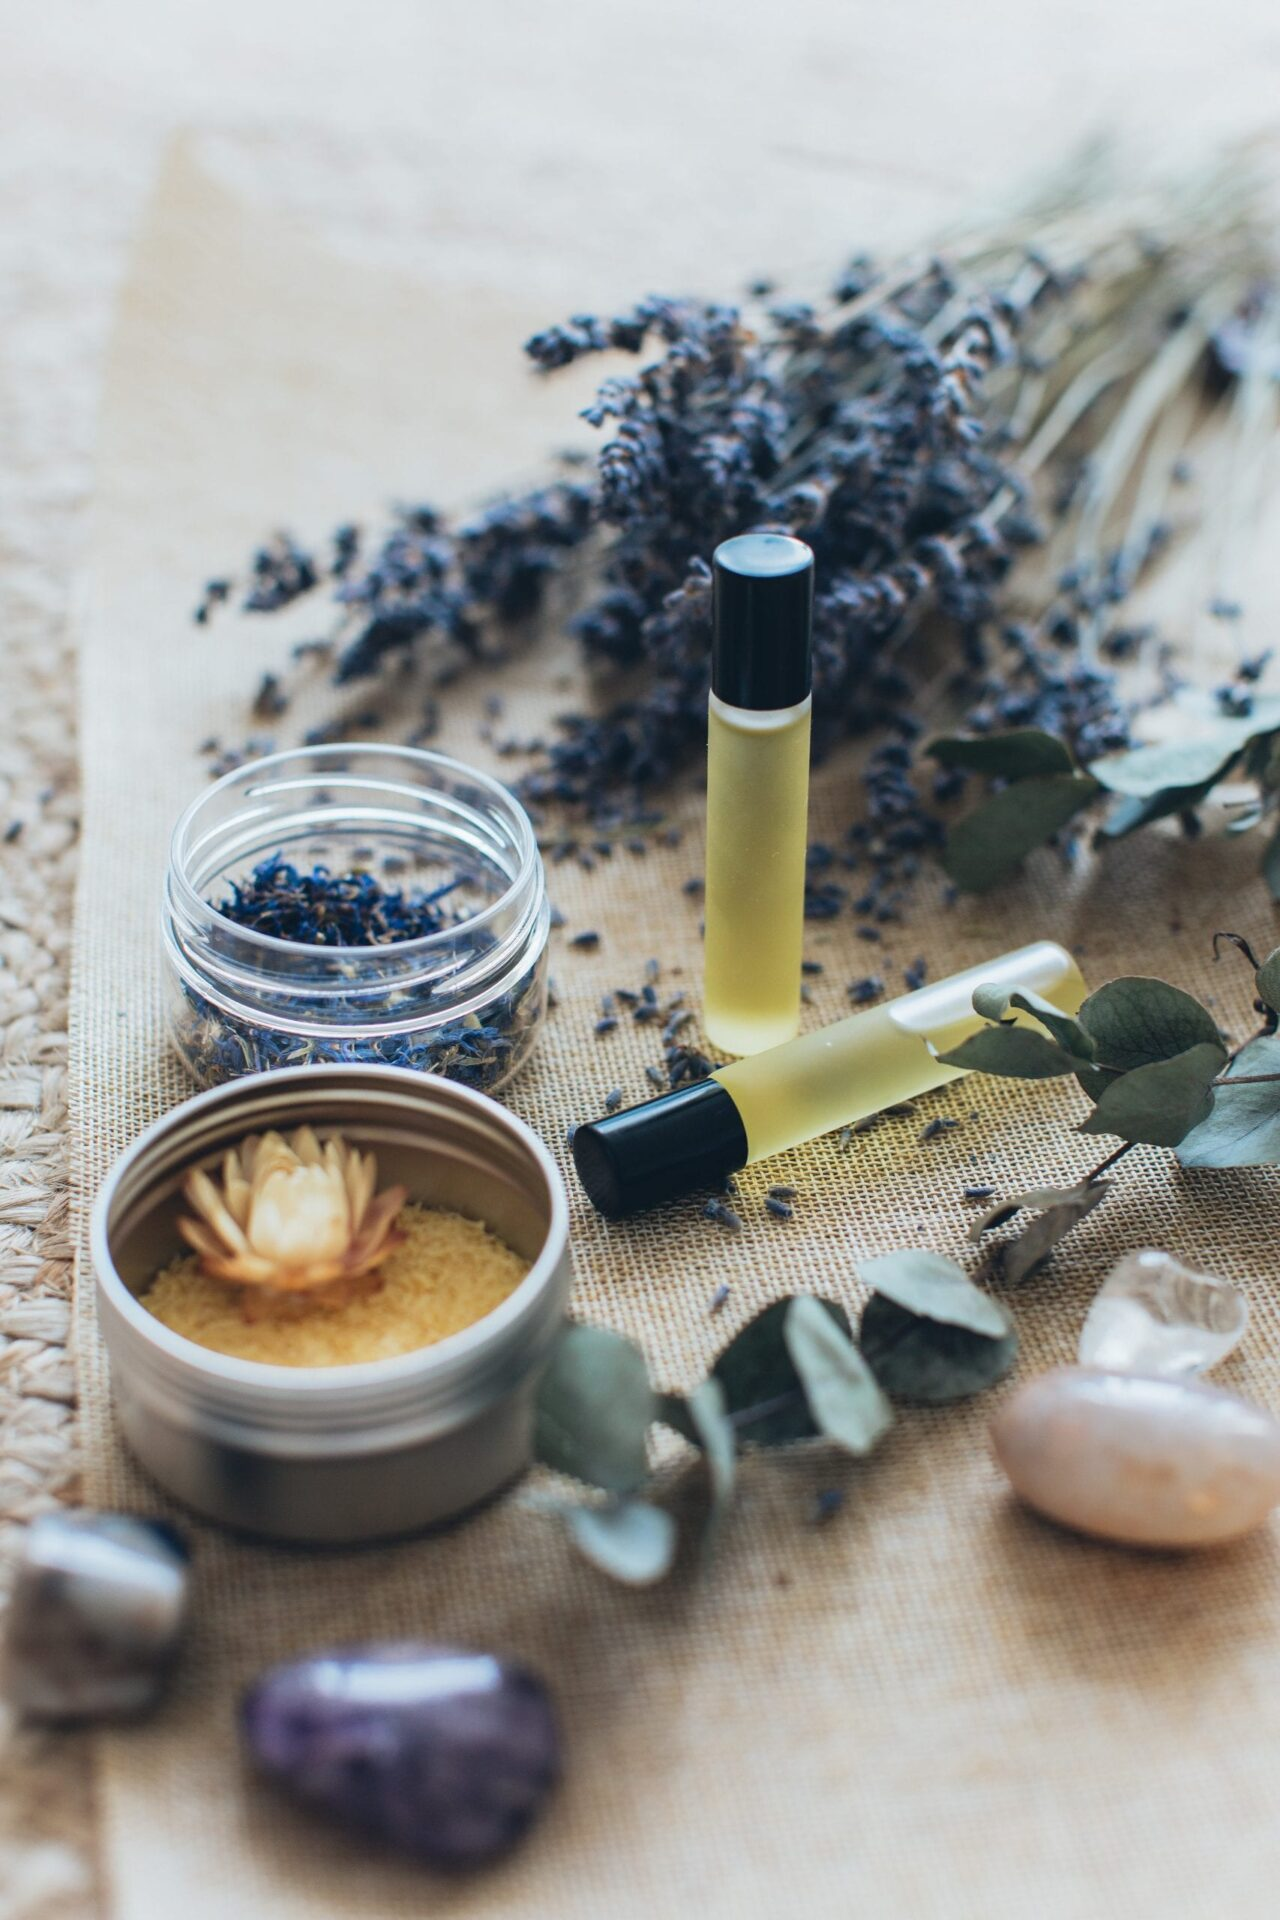 8 Herbs That Are Super Easy To Get For Powerful Love Magic